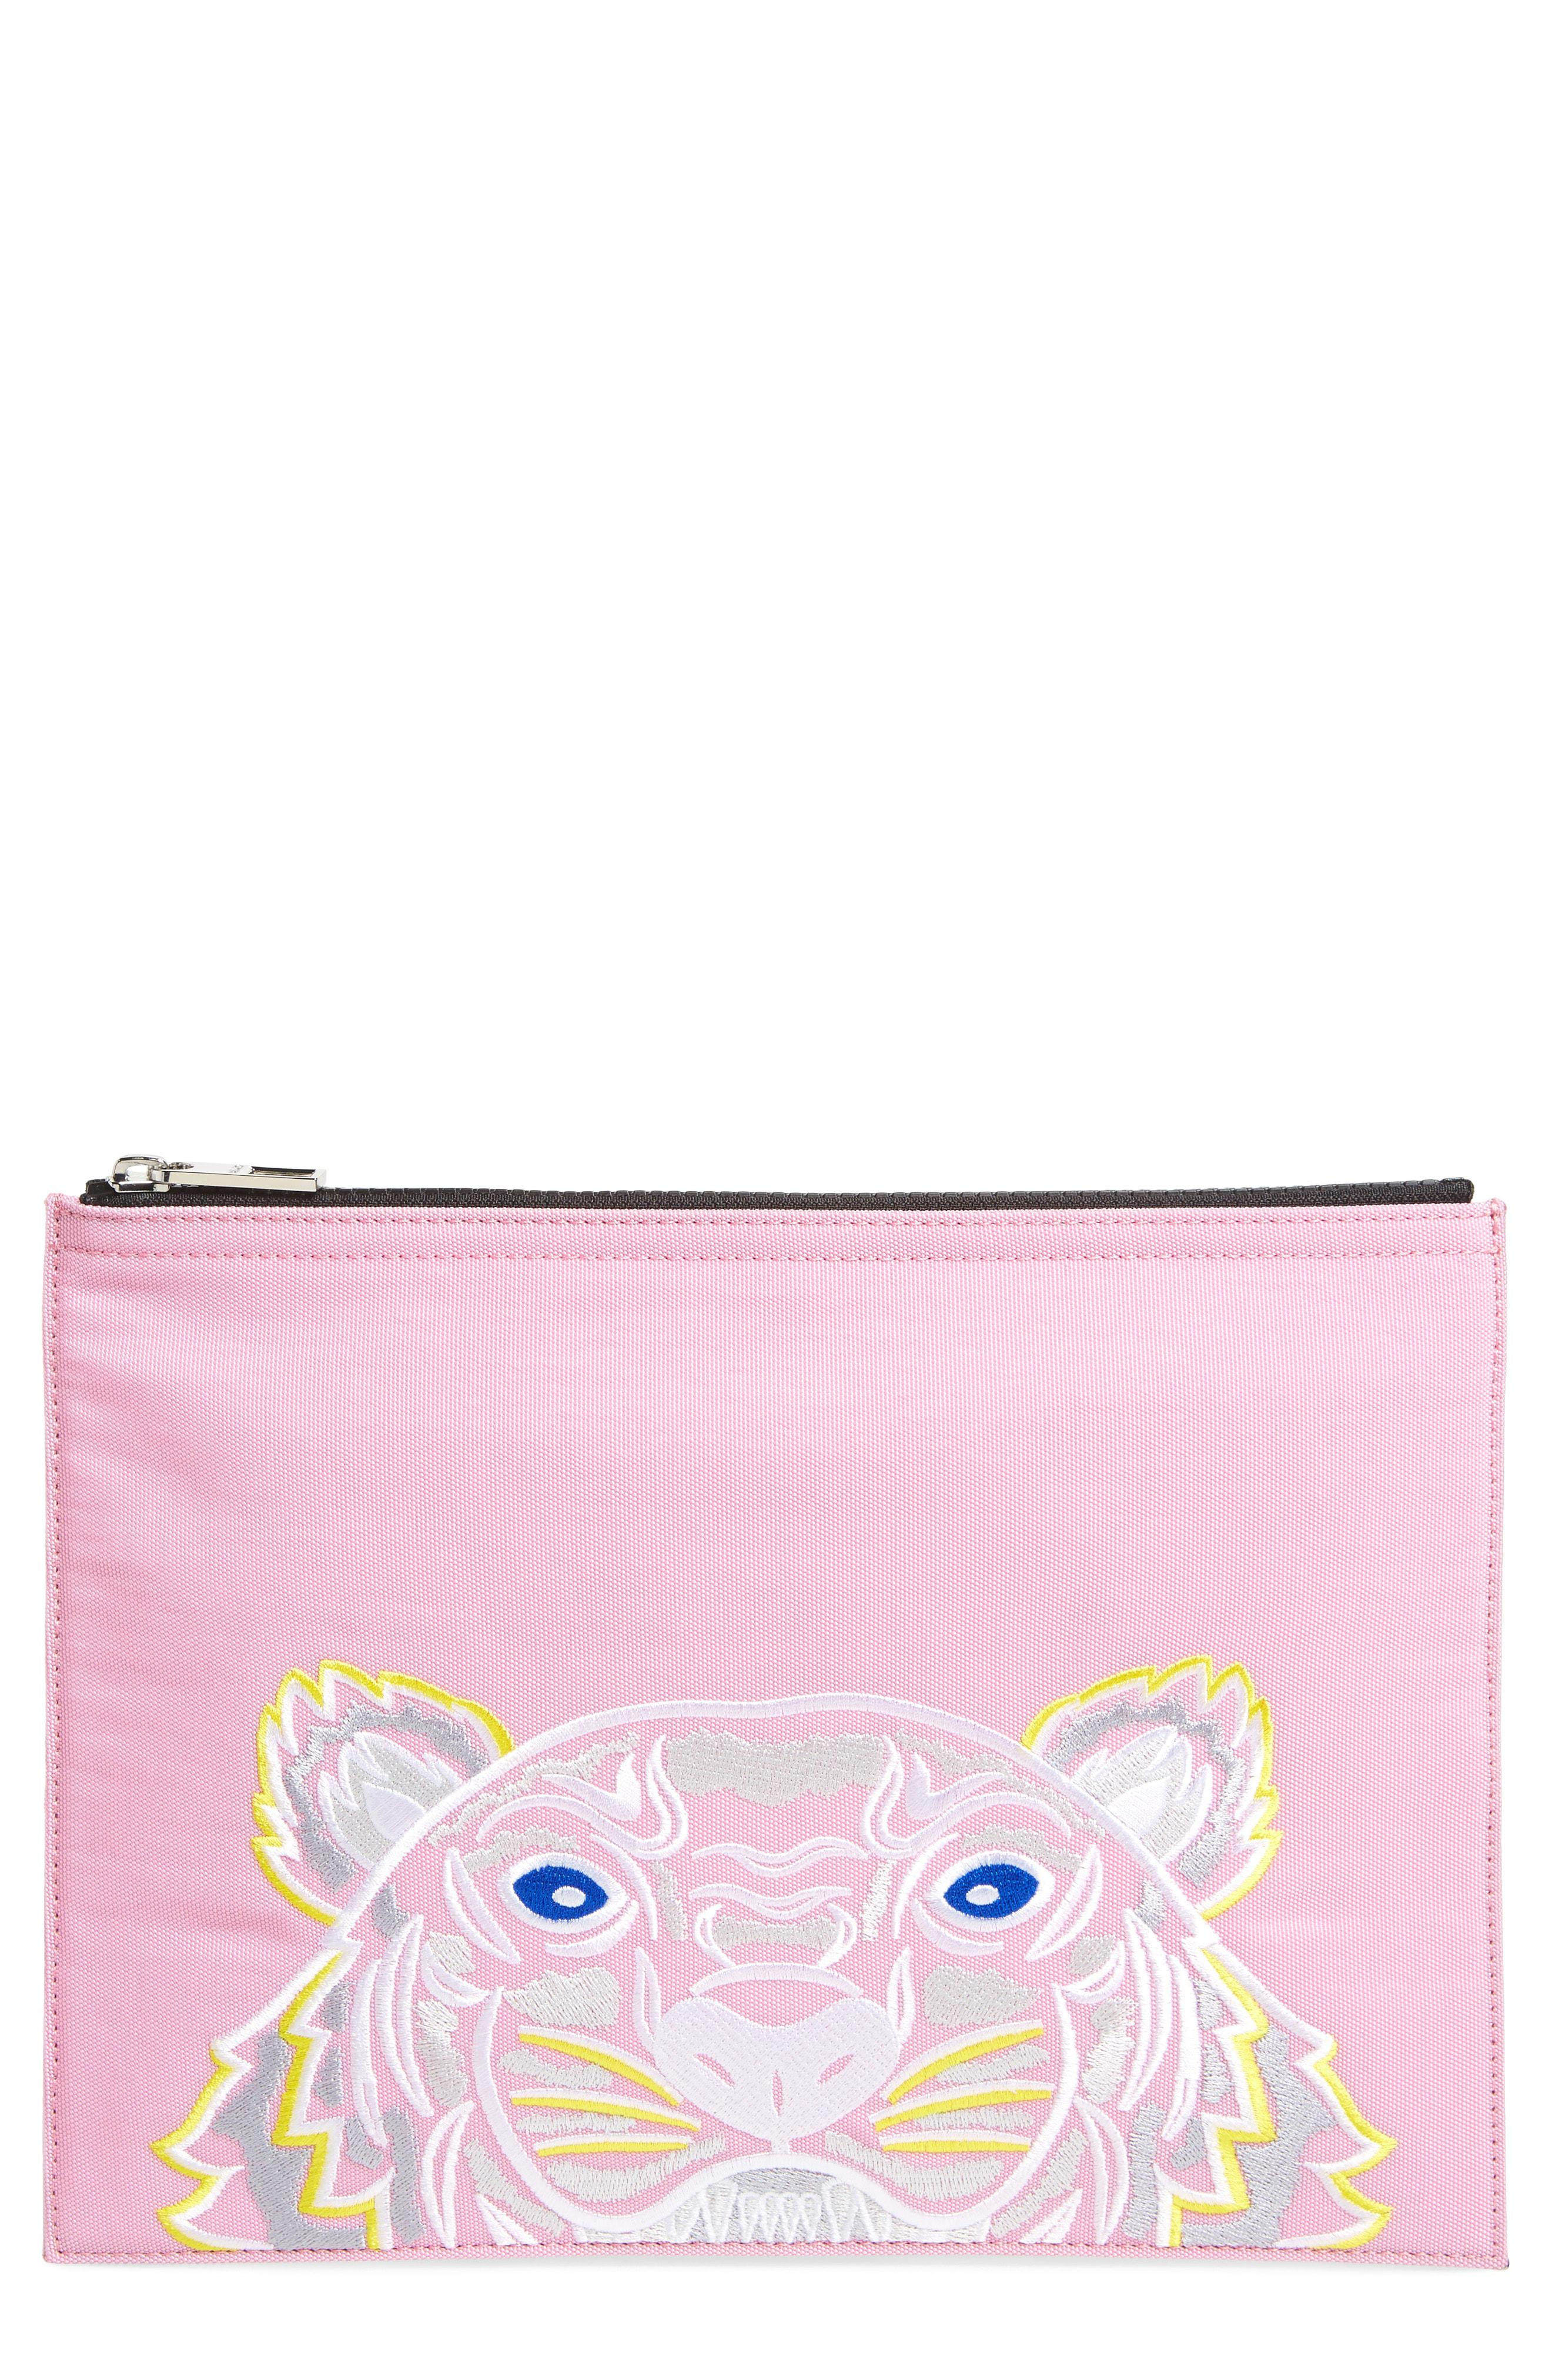 81ac3c7d1c4 Lyst - KENZO Kanvas Tiger Embroidered A4 Pouch in Pink